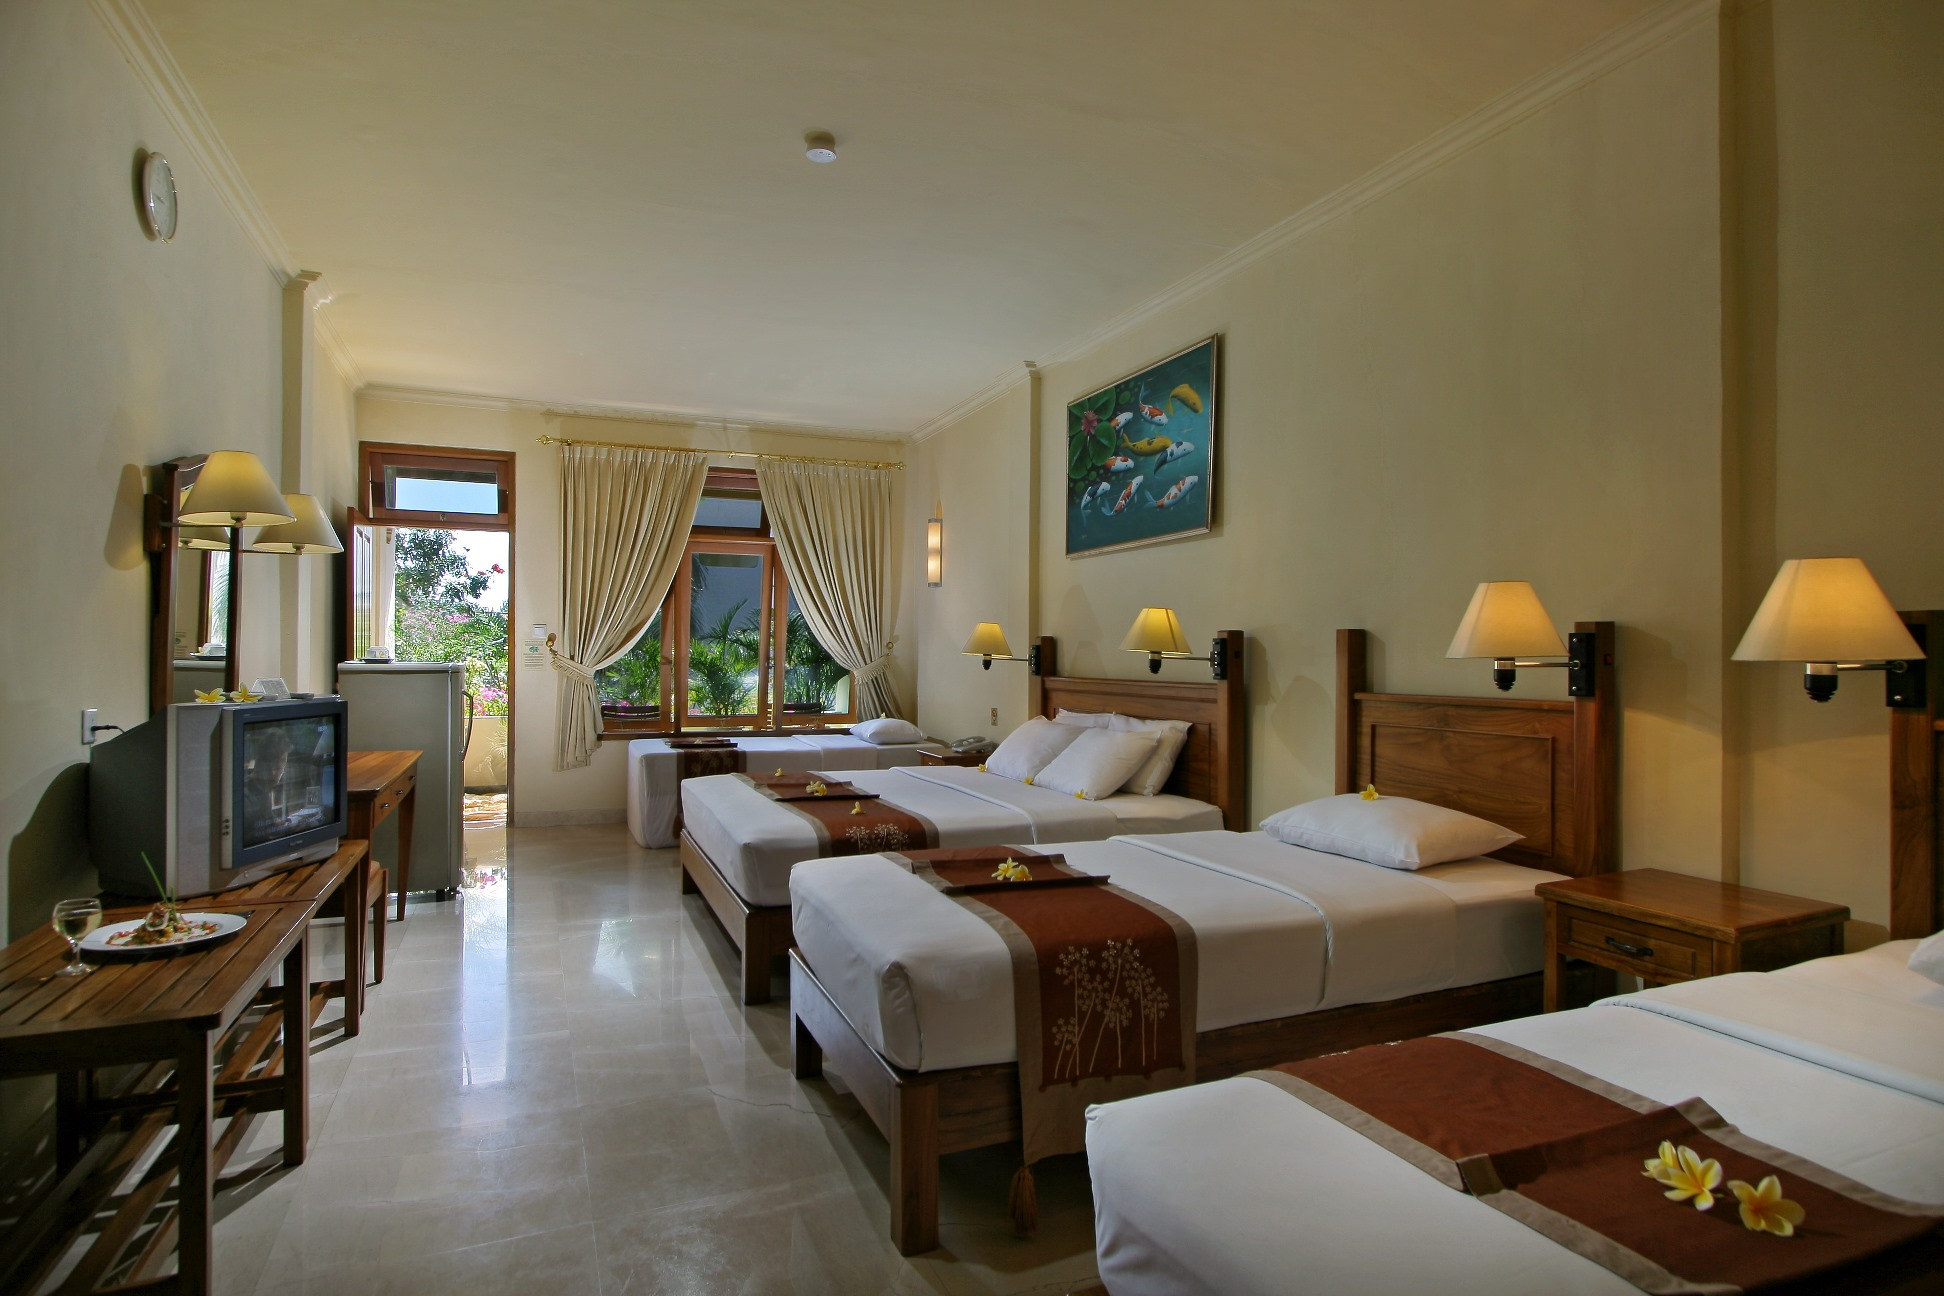 Rooms: Febri's Hotel & Spa - Bali Hotel Kuta - Bali Cheap Hotel